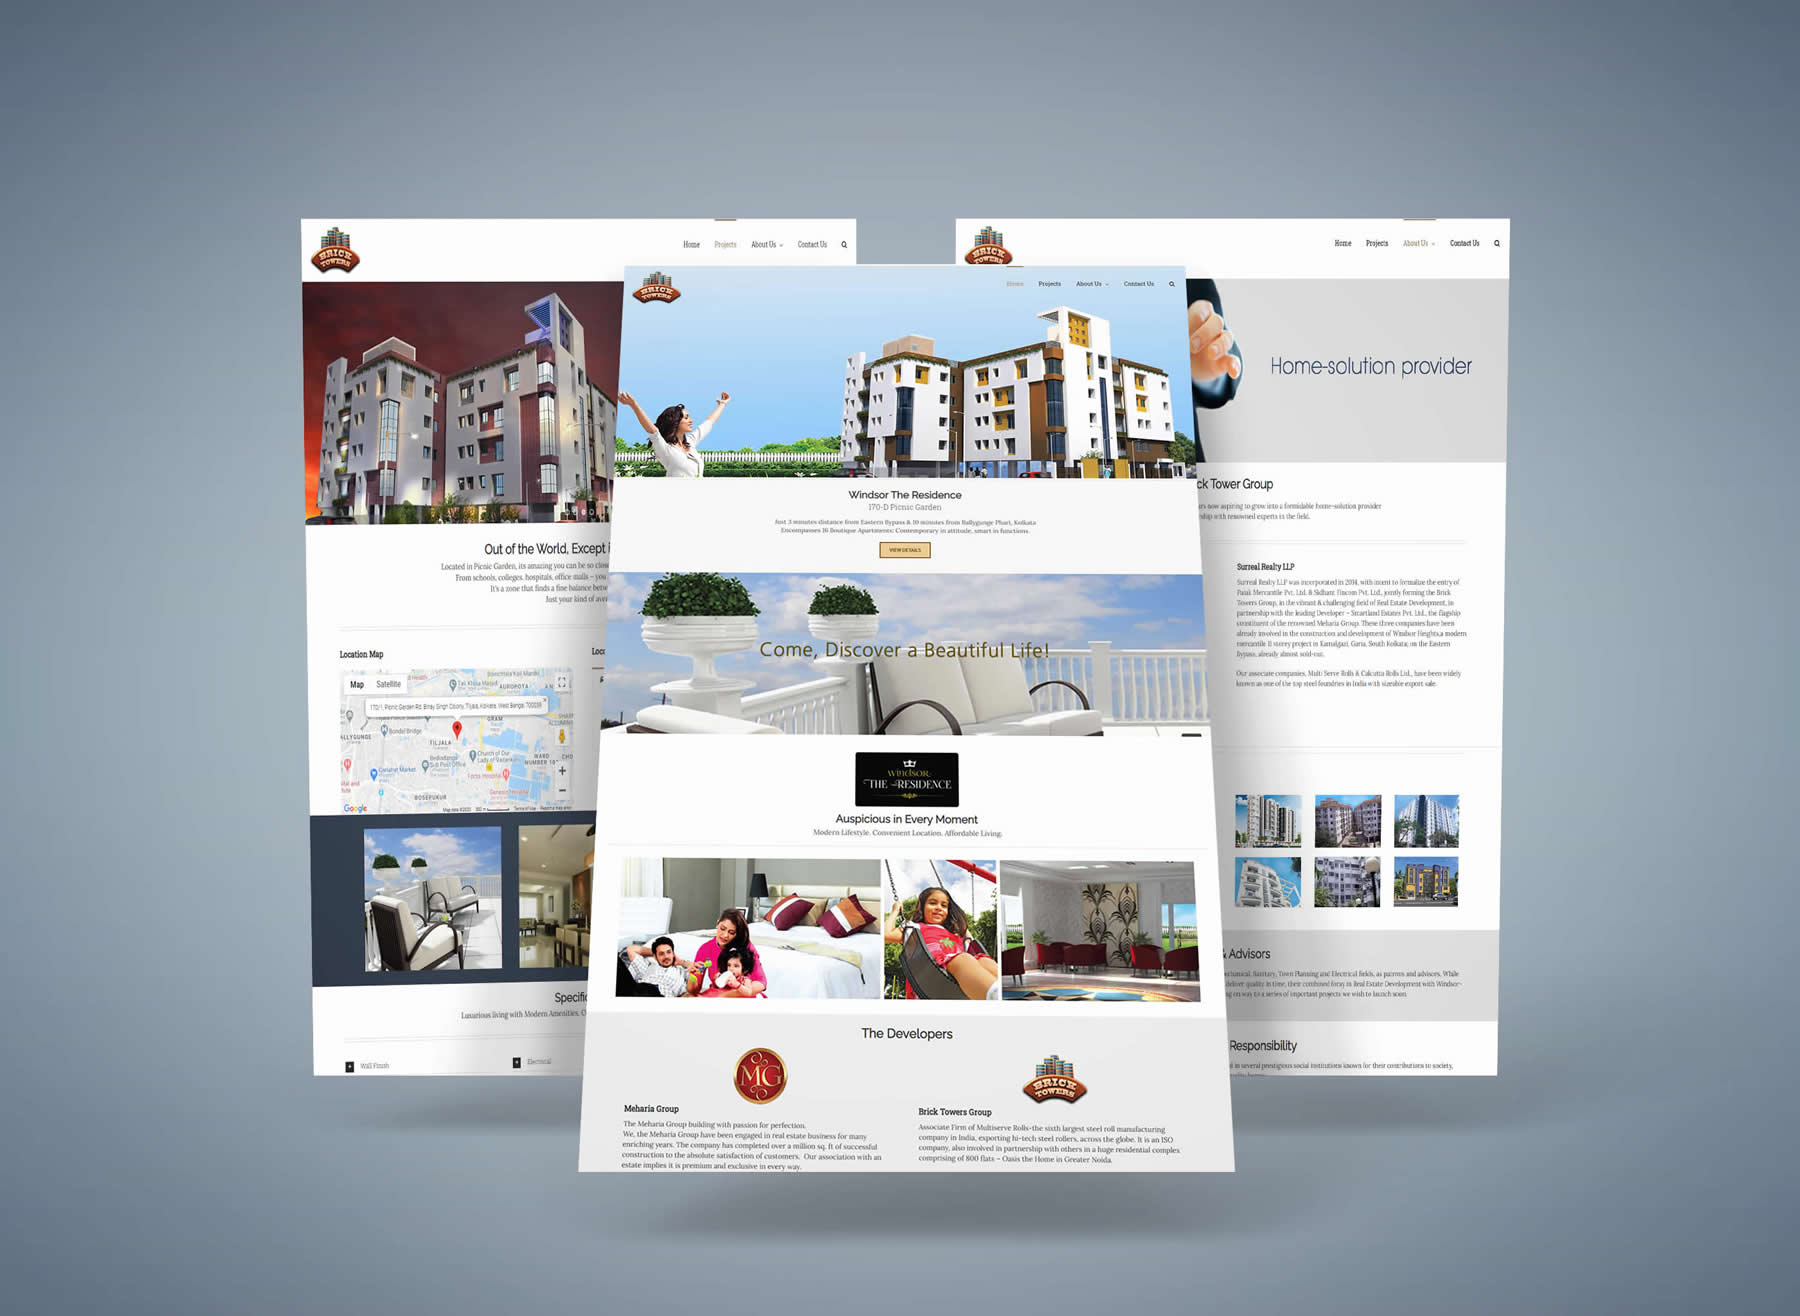 Brick Towers Group Website